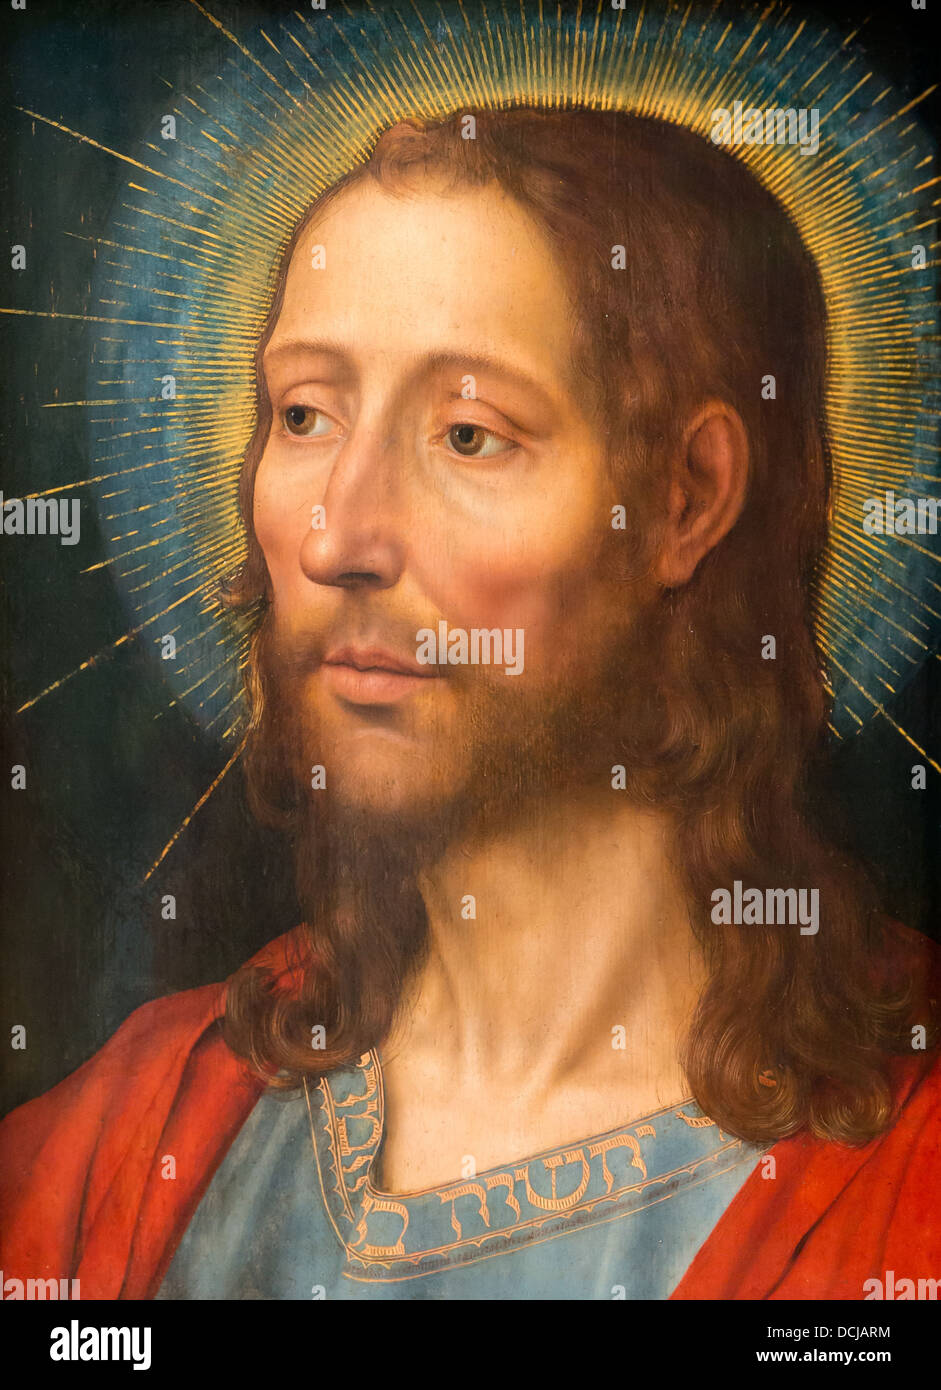 16th century  -  Christ - Quentin Metsys (1529) - Metropolitan Museum of Art - New York Oil on wood - Stock Image